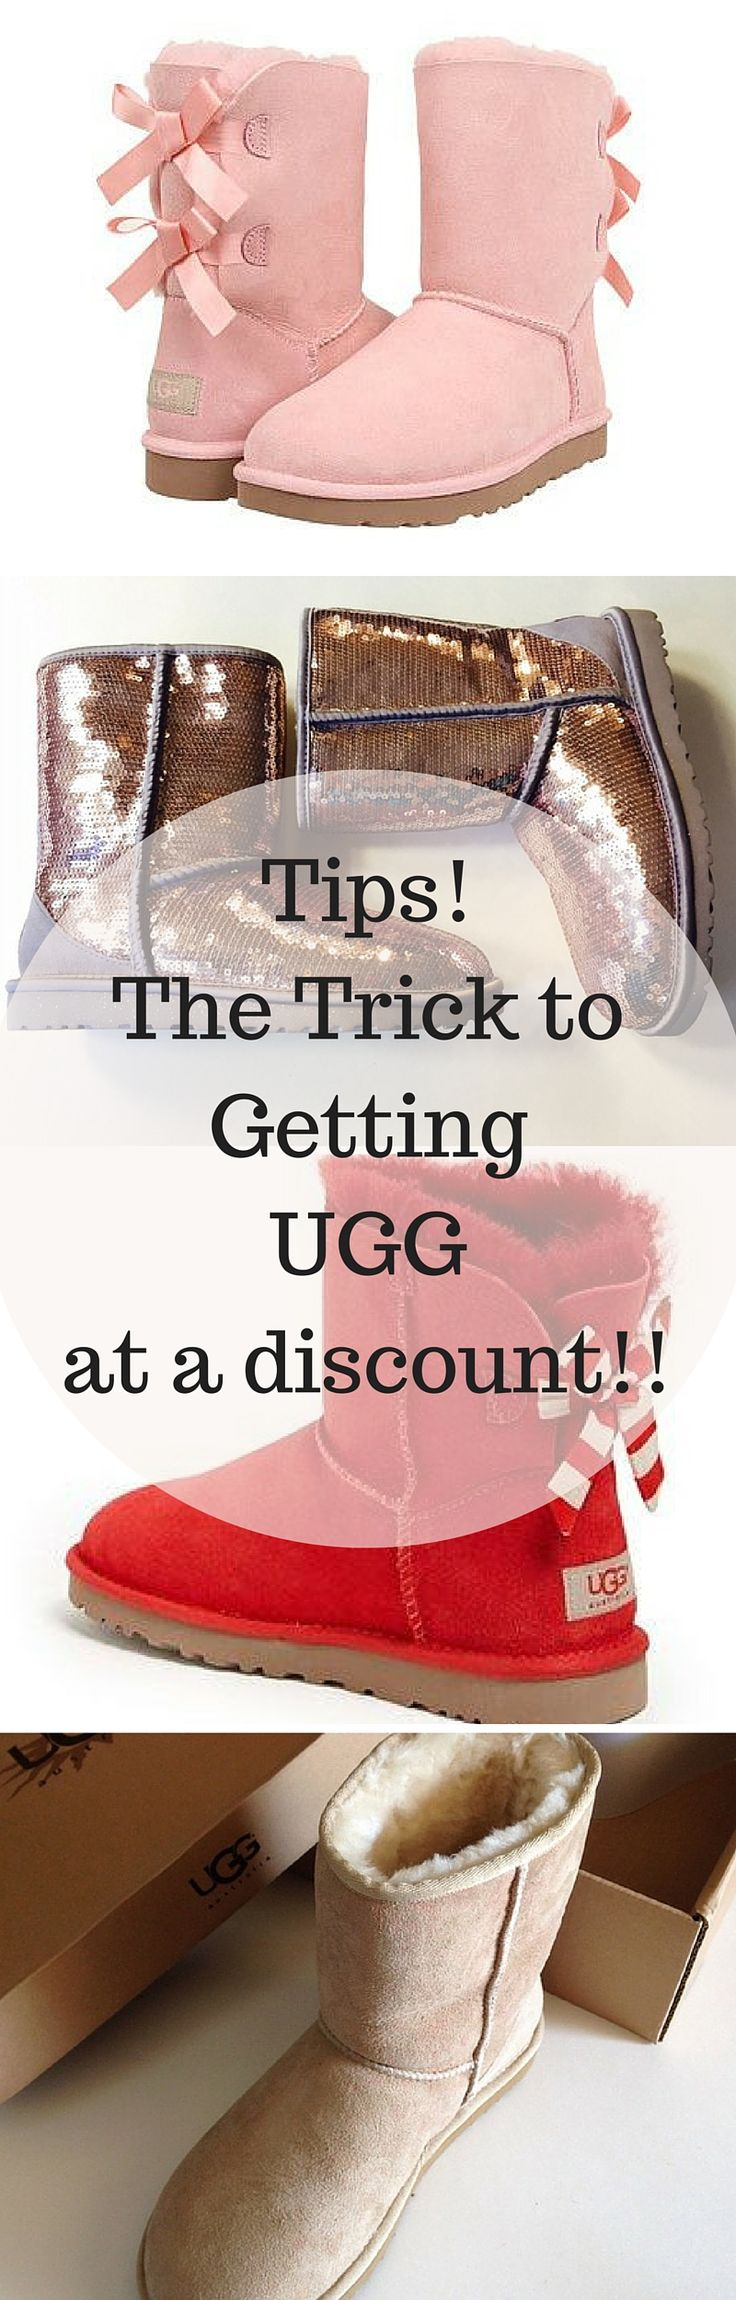 Cheap and Chic! Buy UGG at up to 70% off retail prices now! Click image to install the FREE Poshmark app.